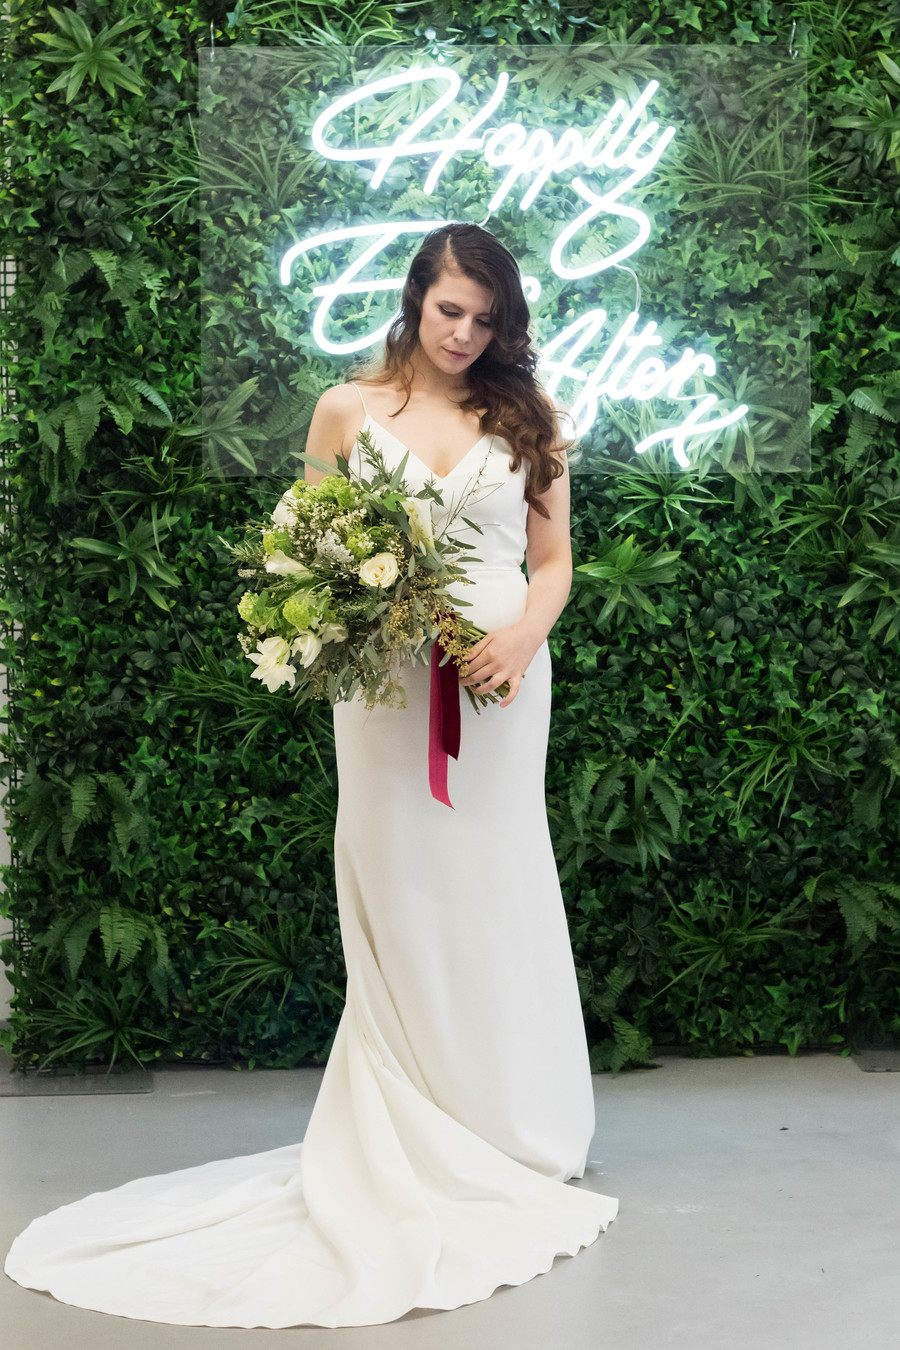 Sleek and modern wedding inspiration from Wakefield with Lam D Peretti Photography (20)